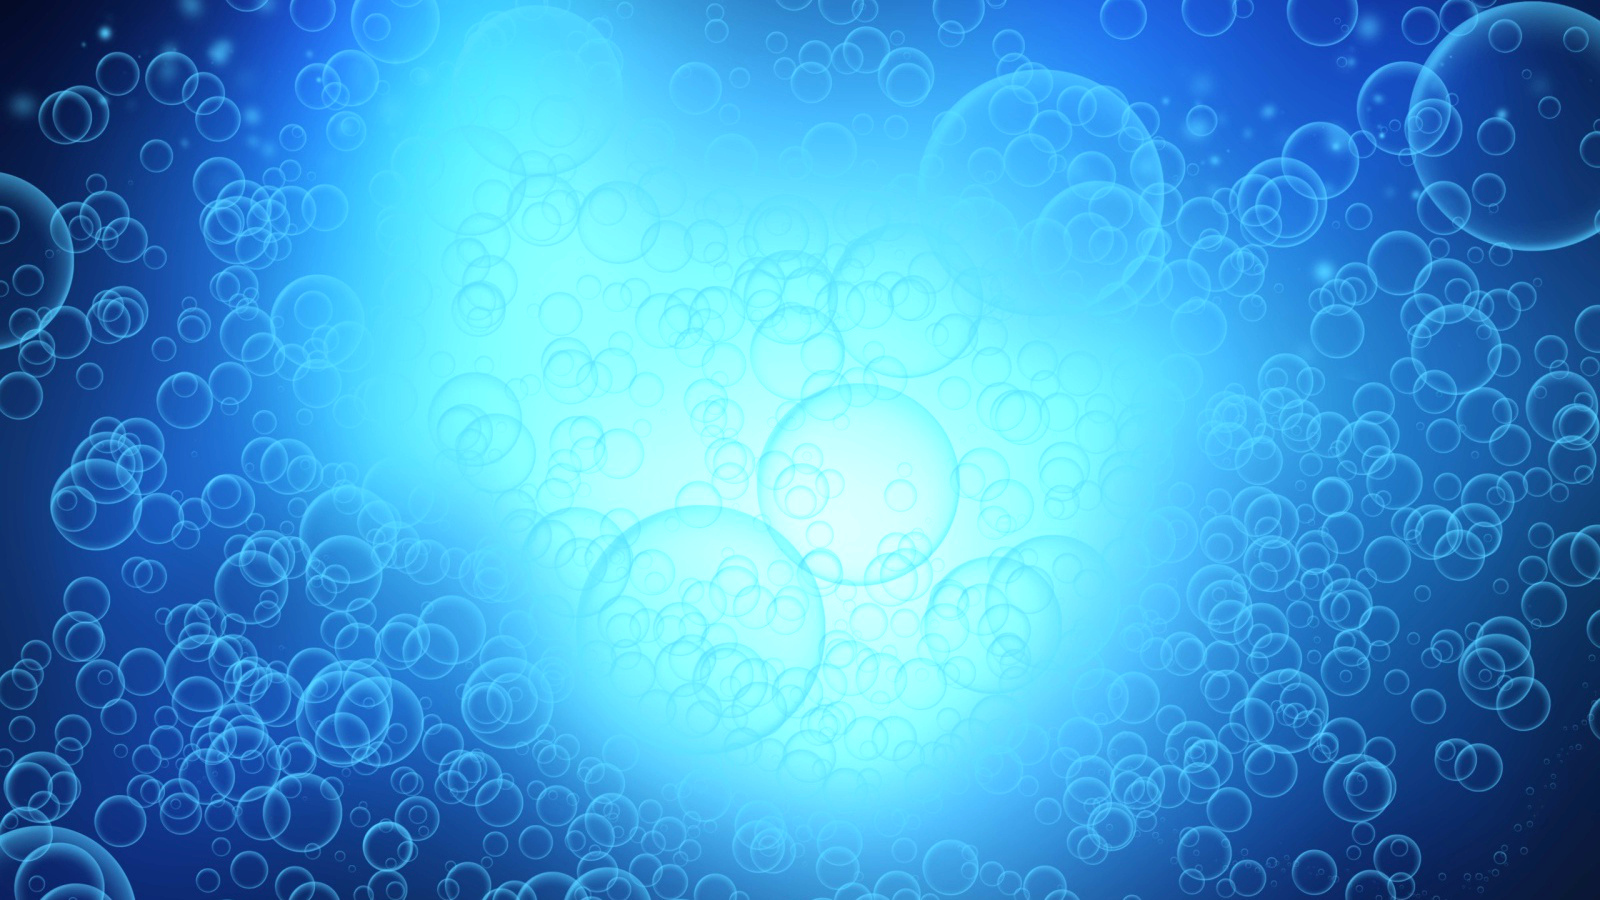 Backgrounds_Background_with_bubbles_035514_